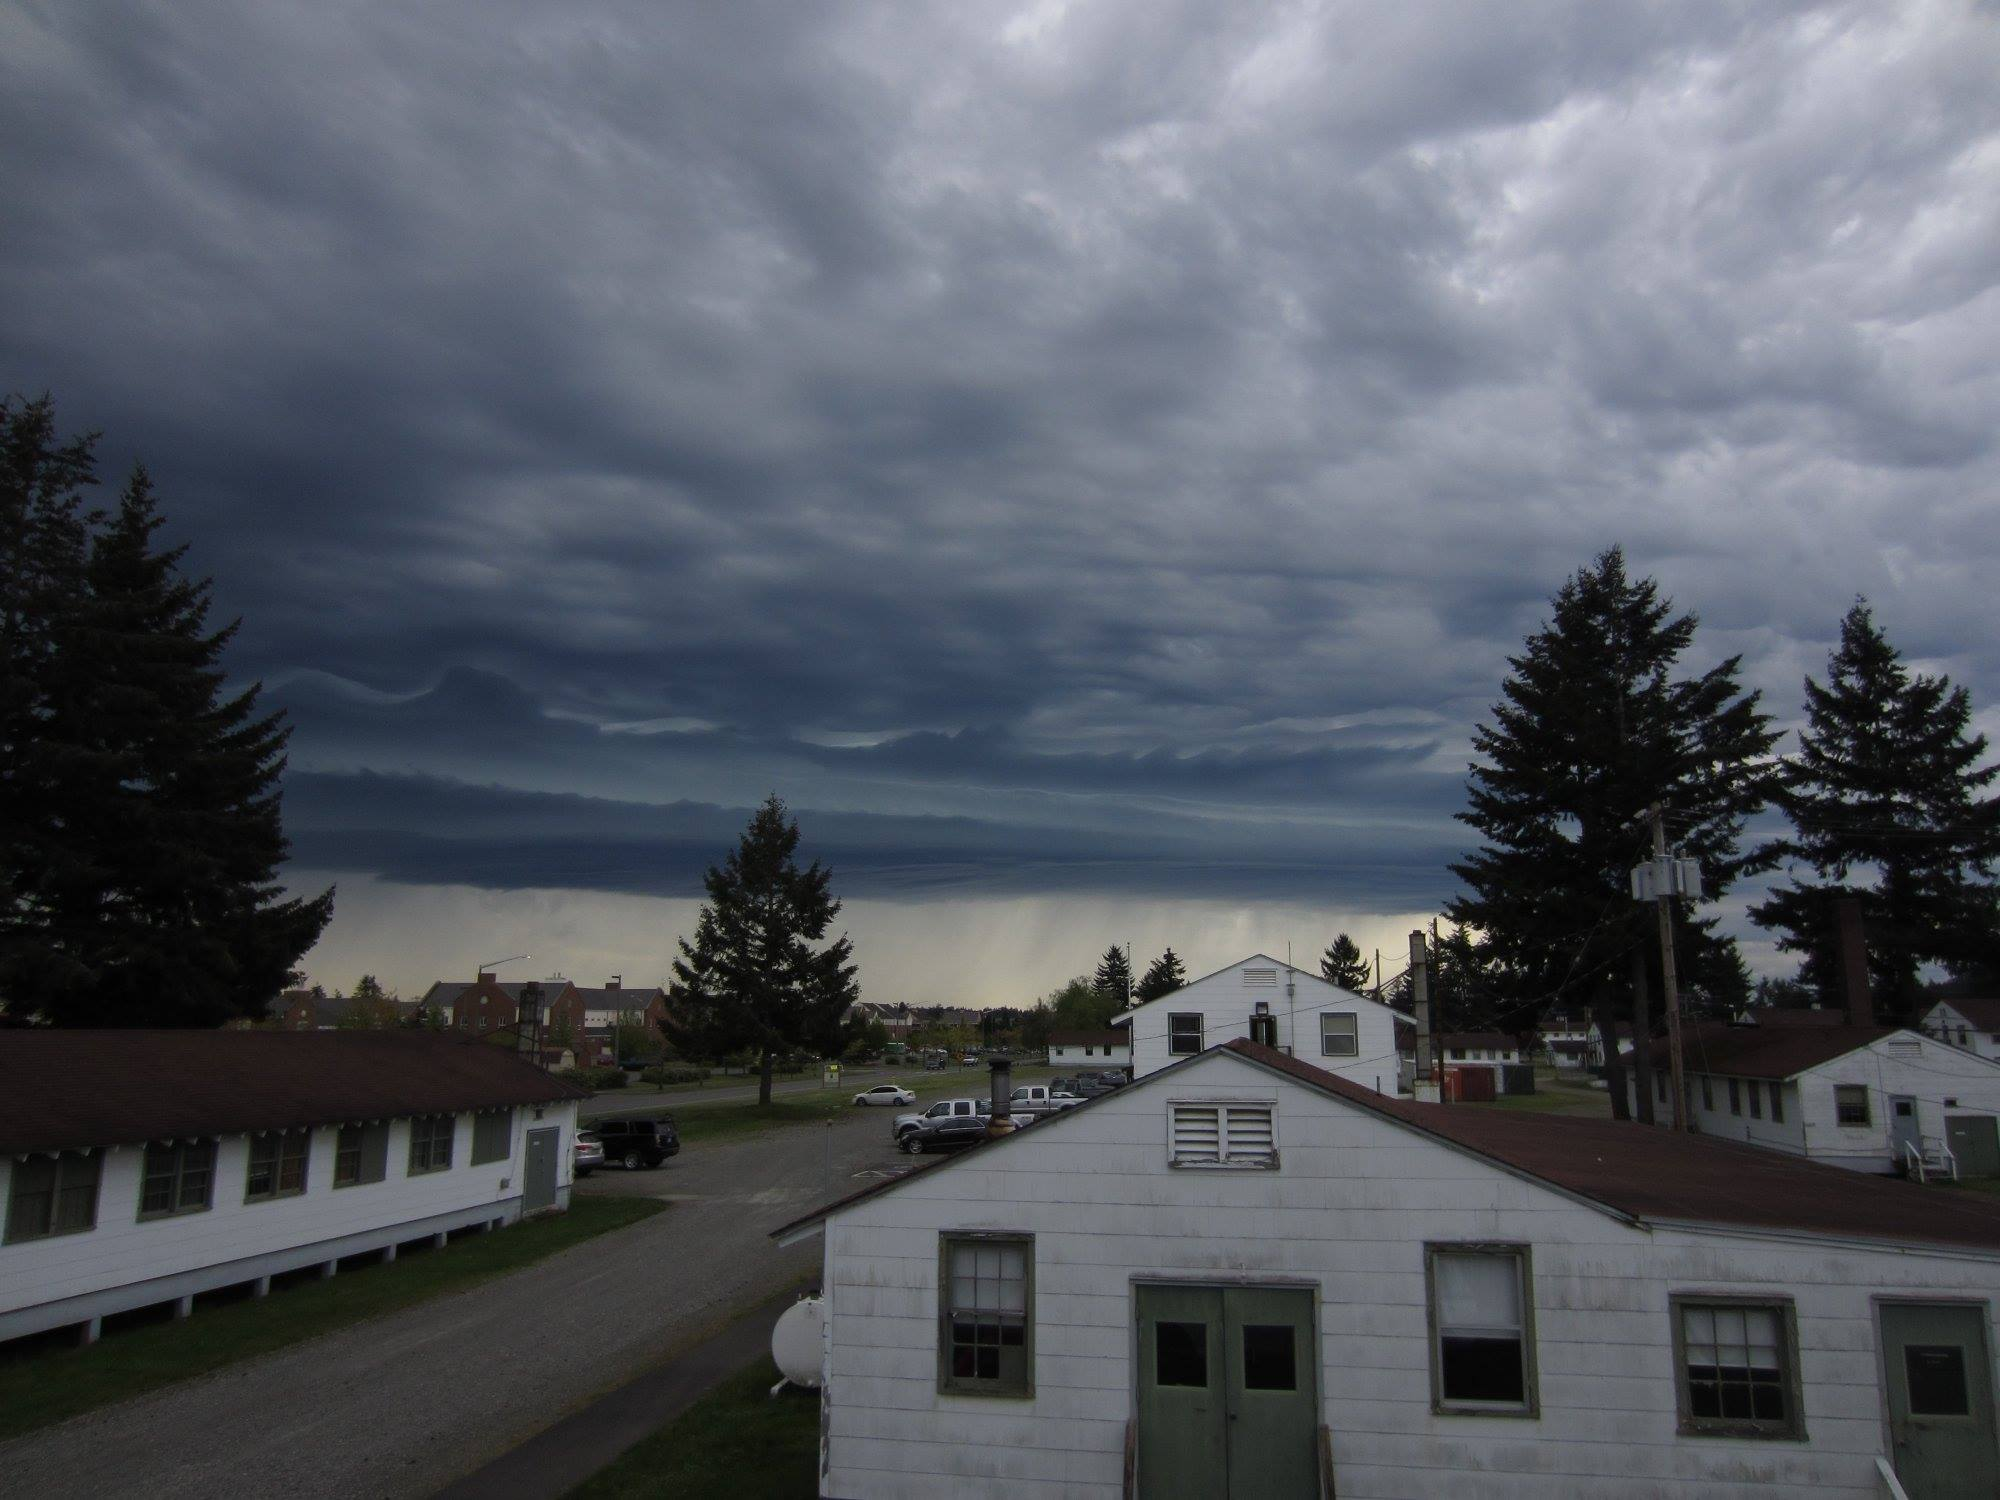 Storms hit Joint Base Lewis-McChord. (Photo courtesy of George Fitkas)